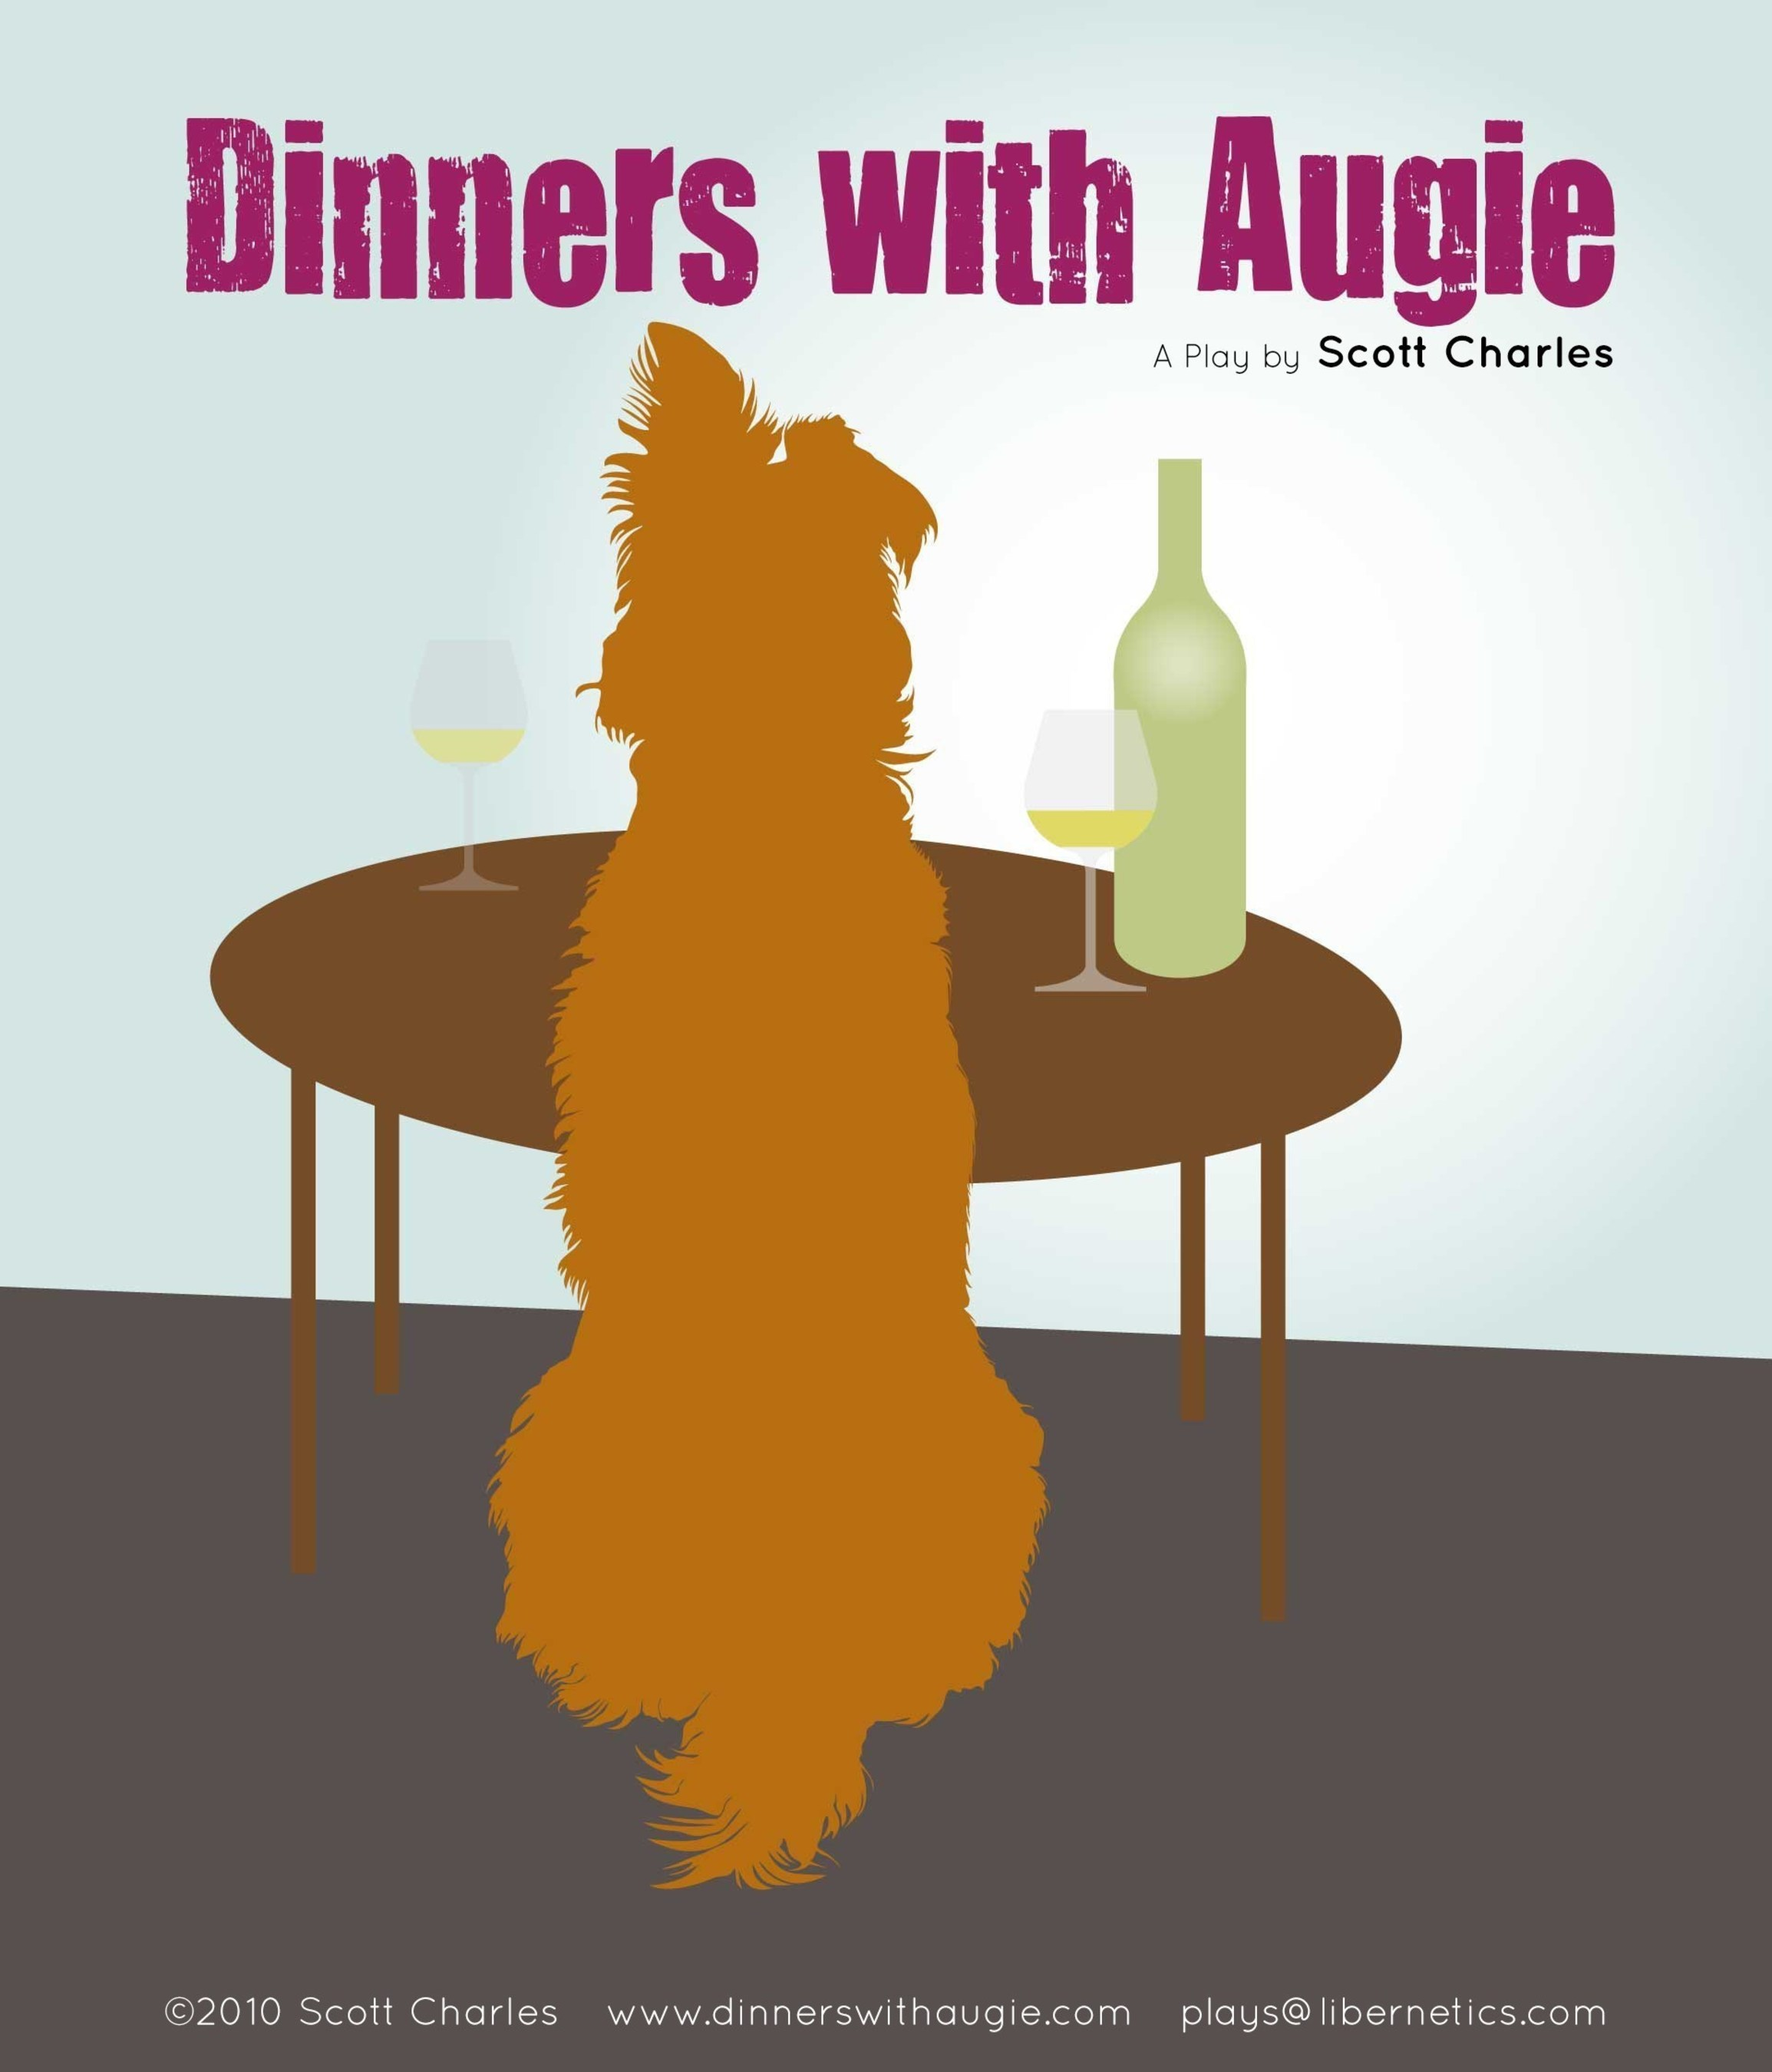 Jeff Webster Completes Another Successful Run in 'Dinners With Augie'